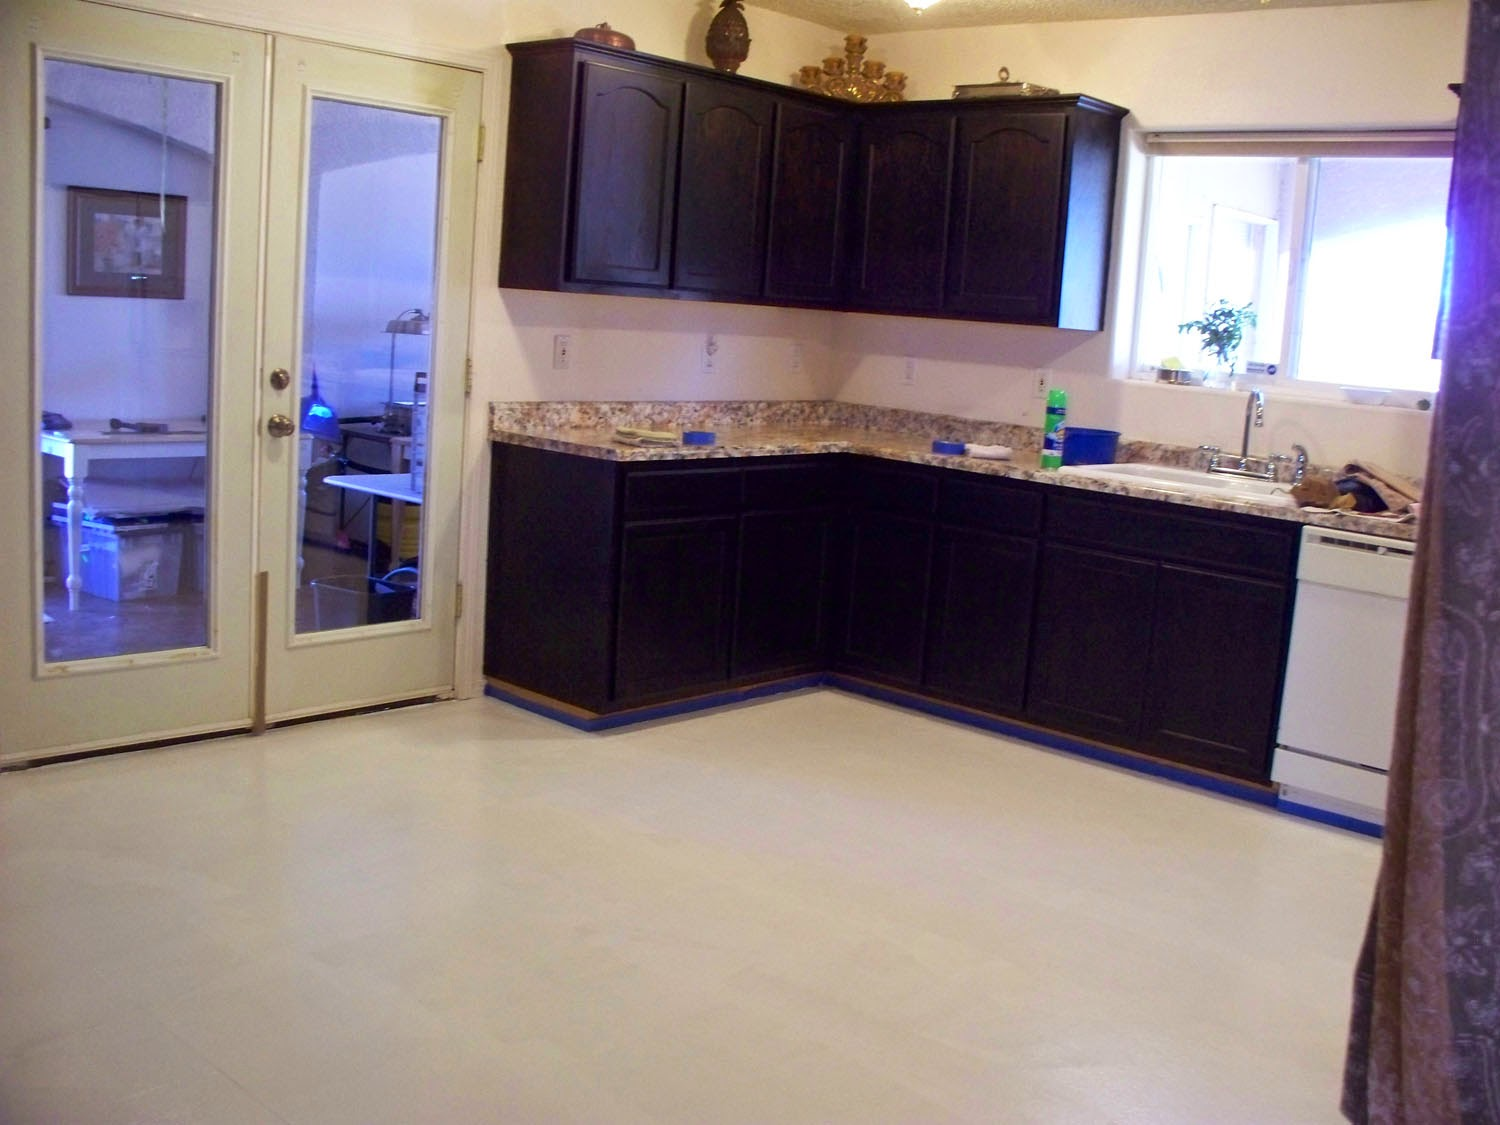 Painting Linoleum Kitchen Floor Victoria Larsens Decorating With Class How To Paint Your